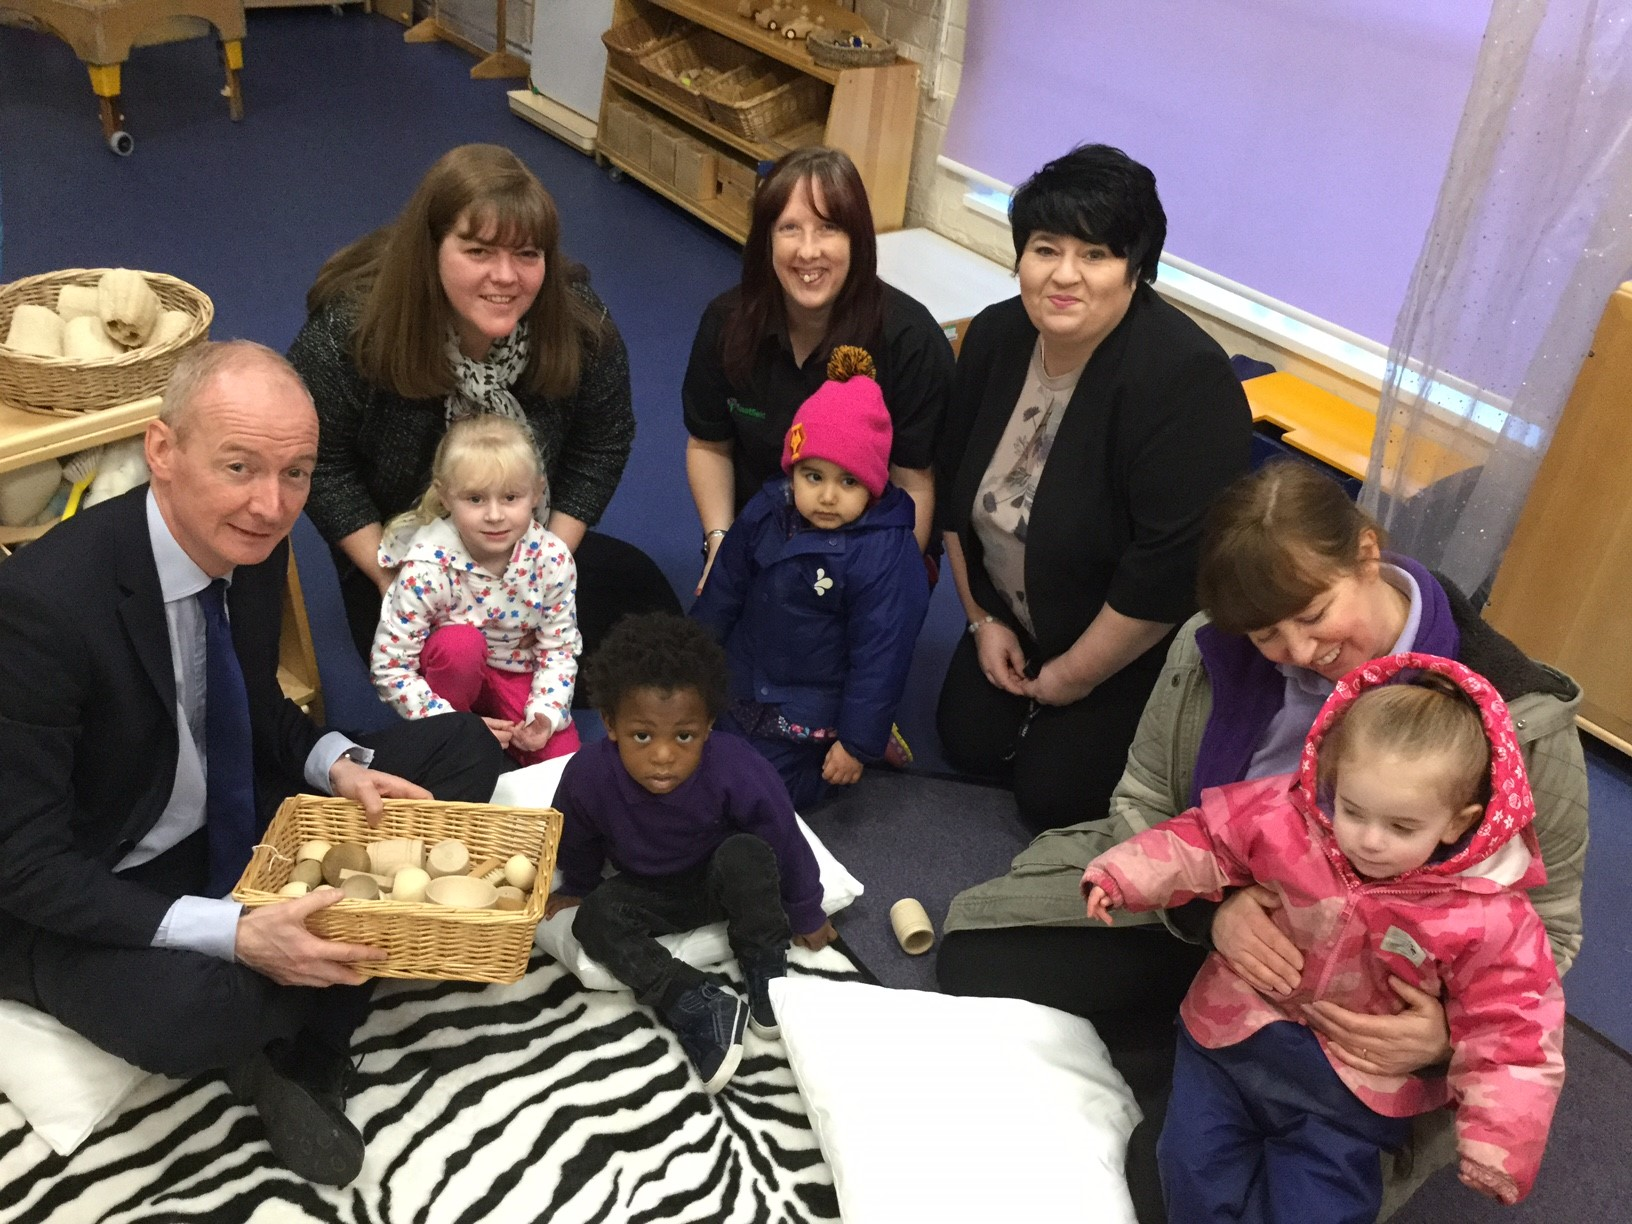 bilston_nursery_group_photo.jpg